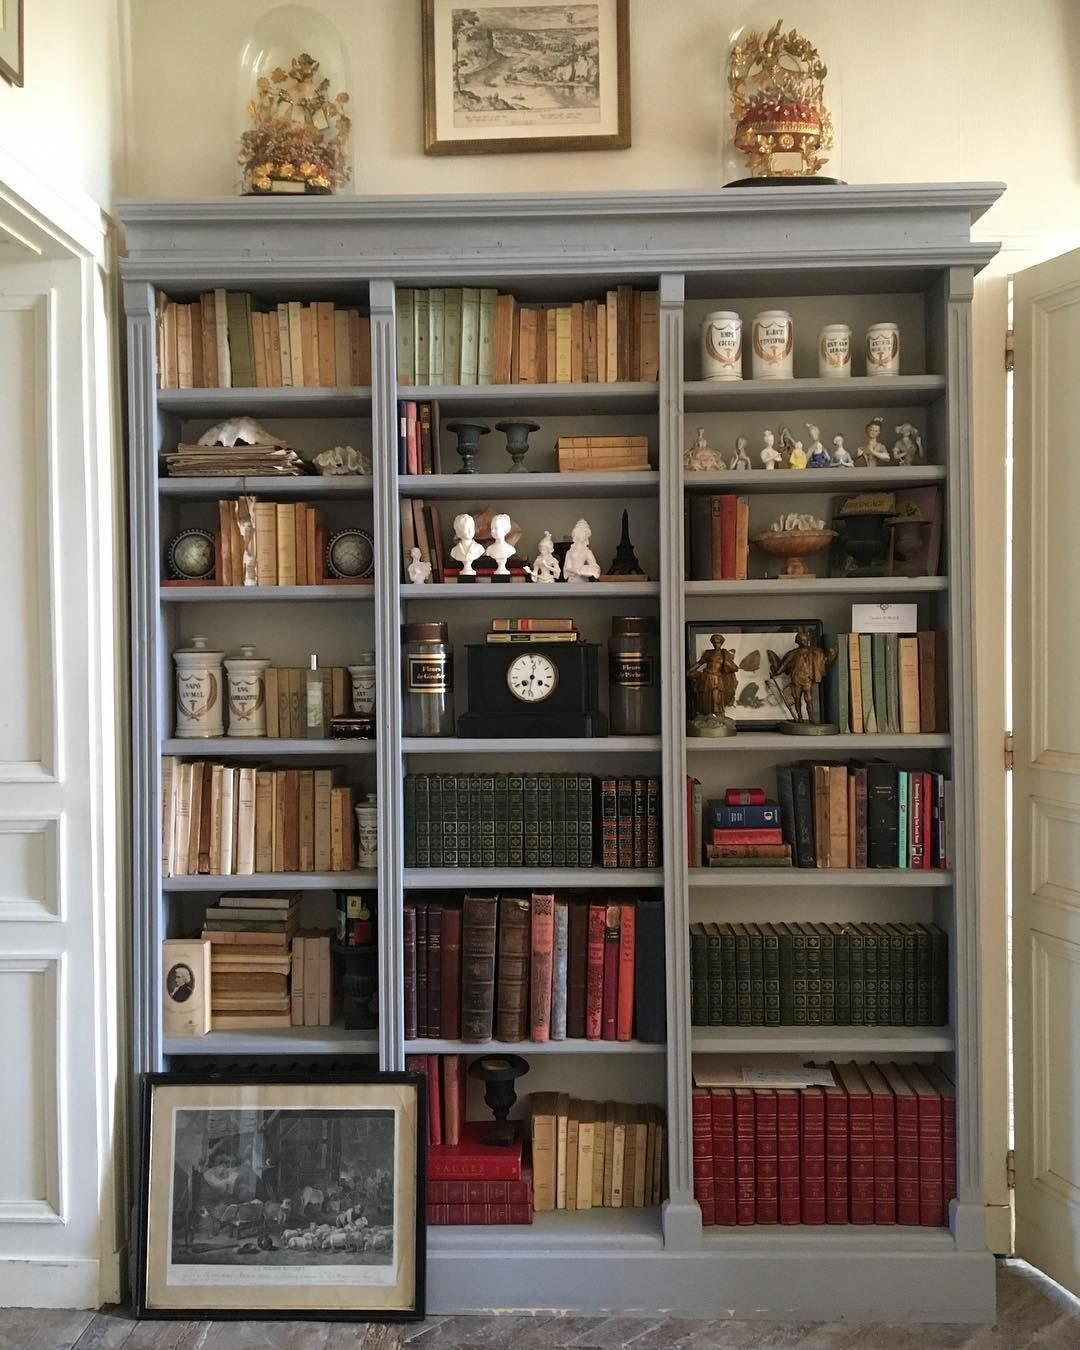 Classic Home Library Design: Bonjour From Deep In French Countryside. Woke Up With